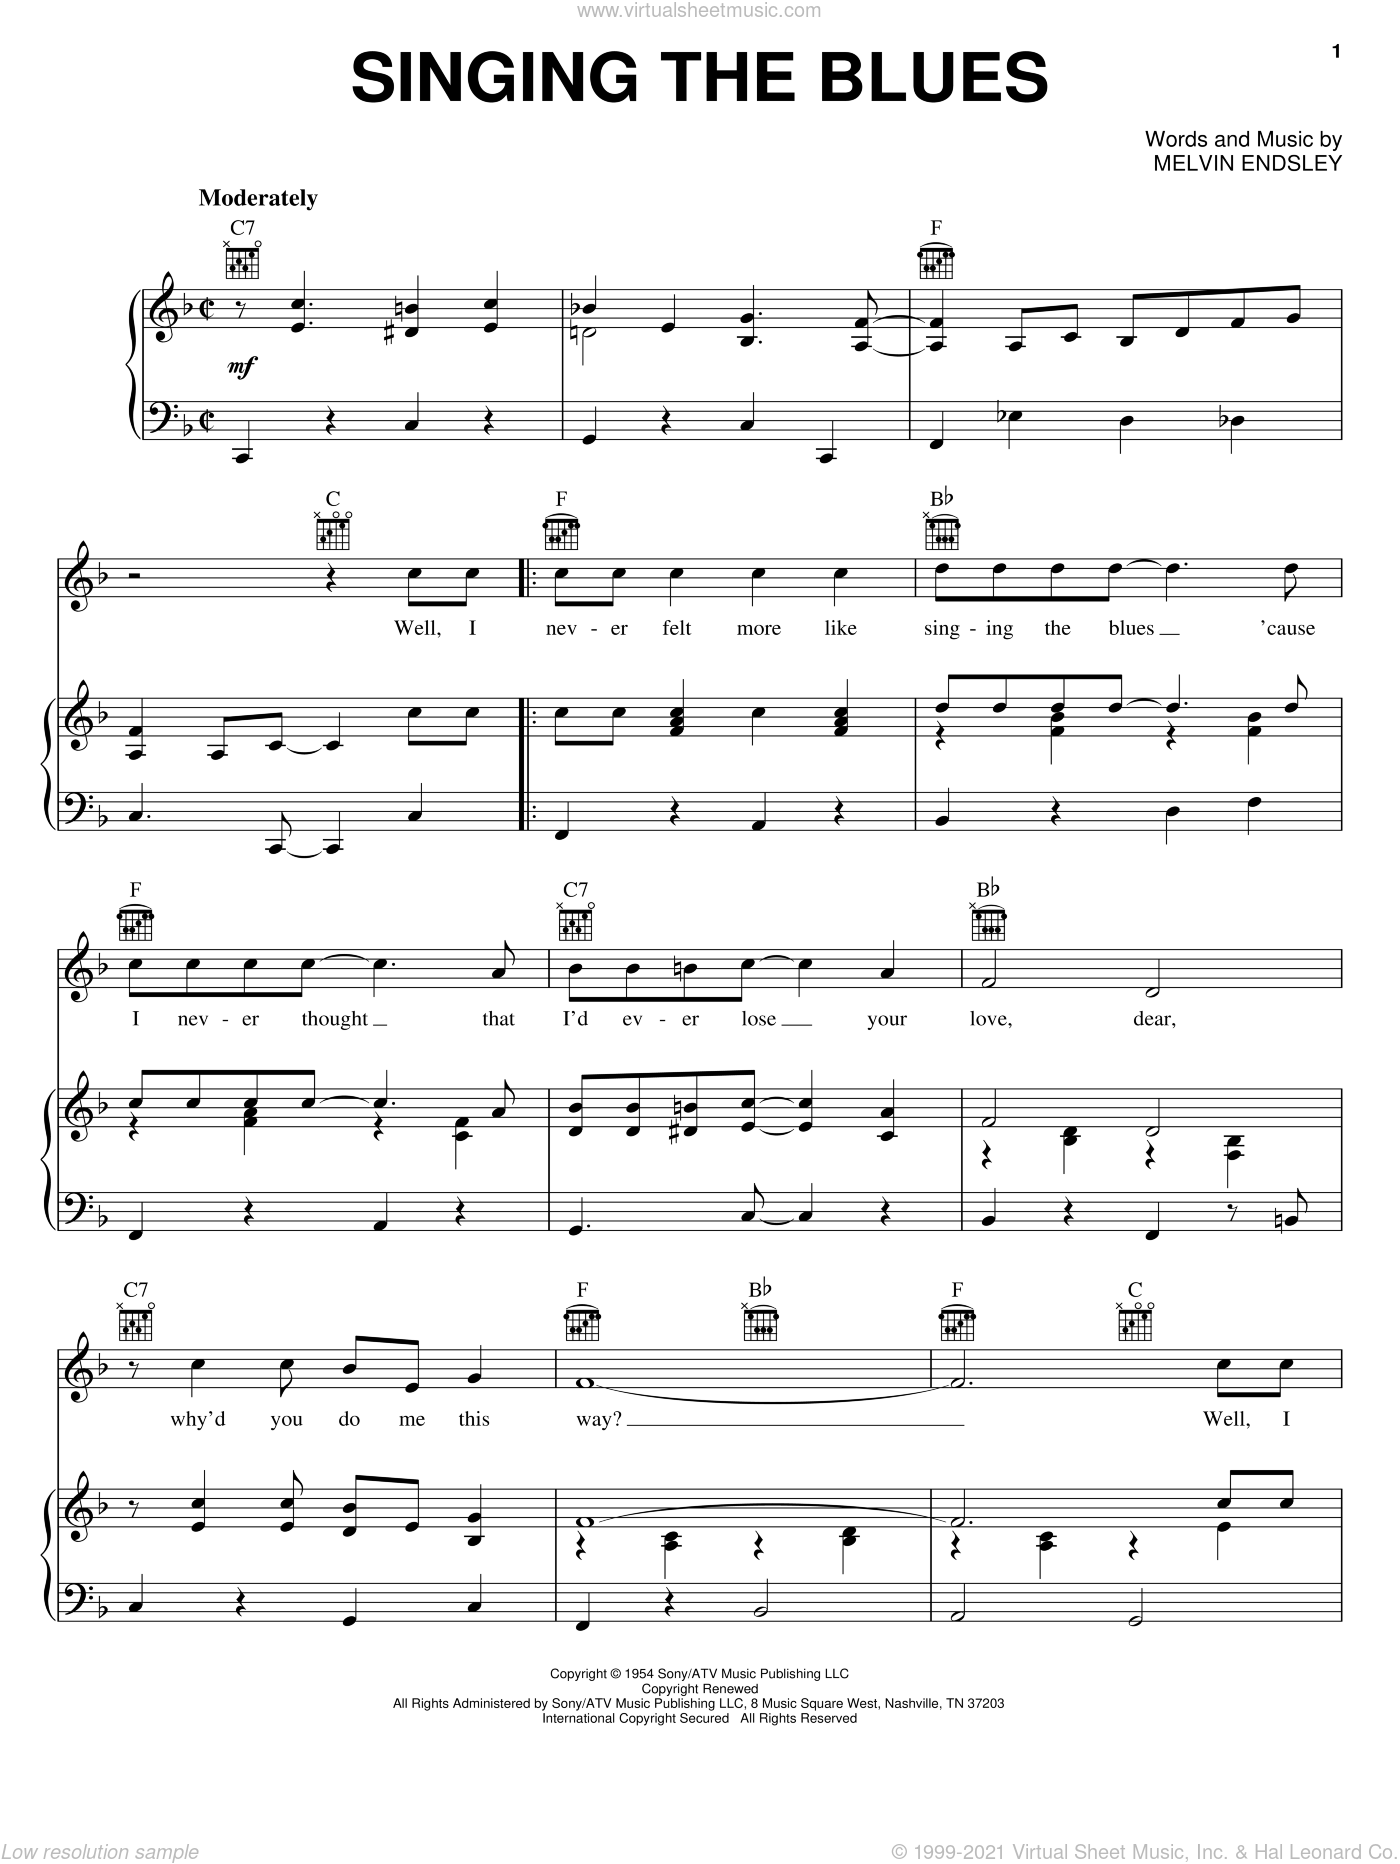 Singing The Blues sheet music for voice, piano or guitar by Melvin Endsley and Marty Robbins. Score Image Preview.